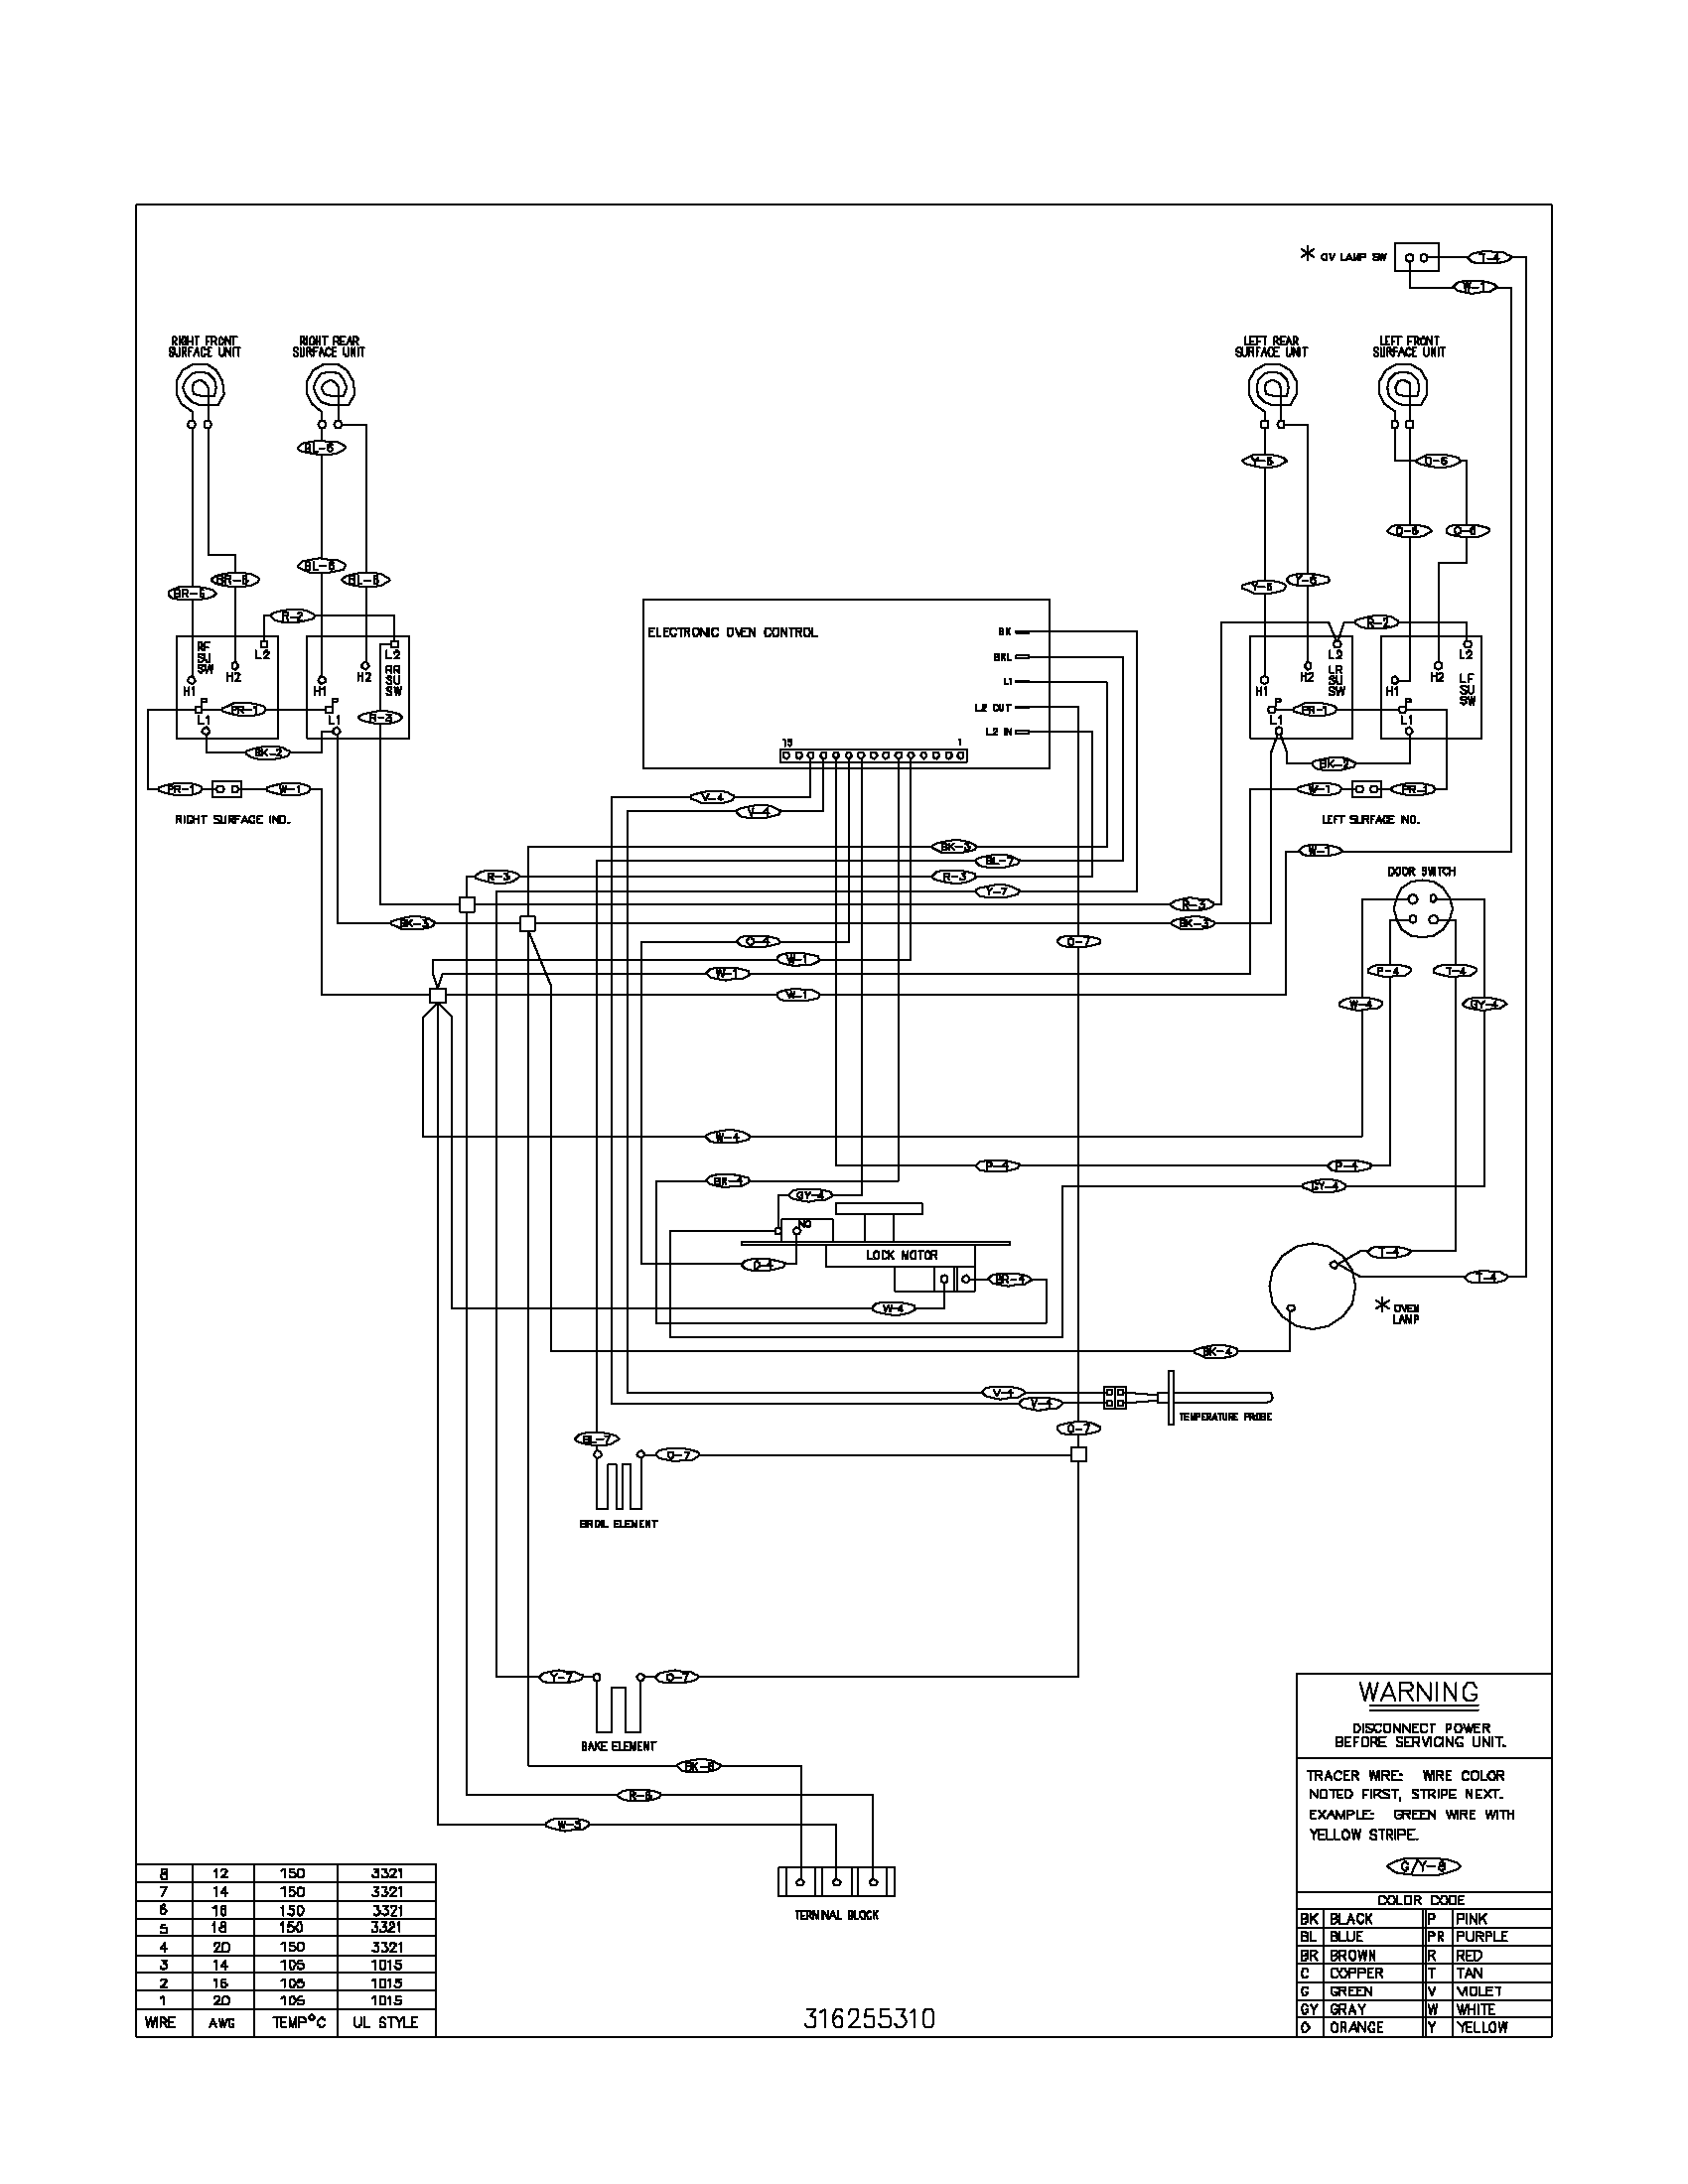 wiring diagram parts frigidaire wiring diagram manufacturing wiring diagram \u2022 free frigidaire dishwasher wiring diagram at honlapkeszites.co